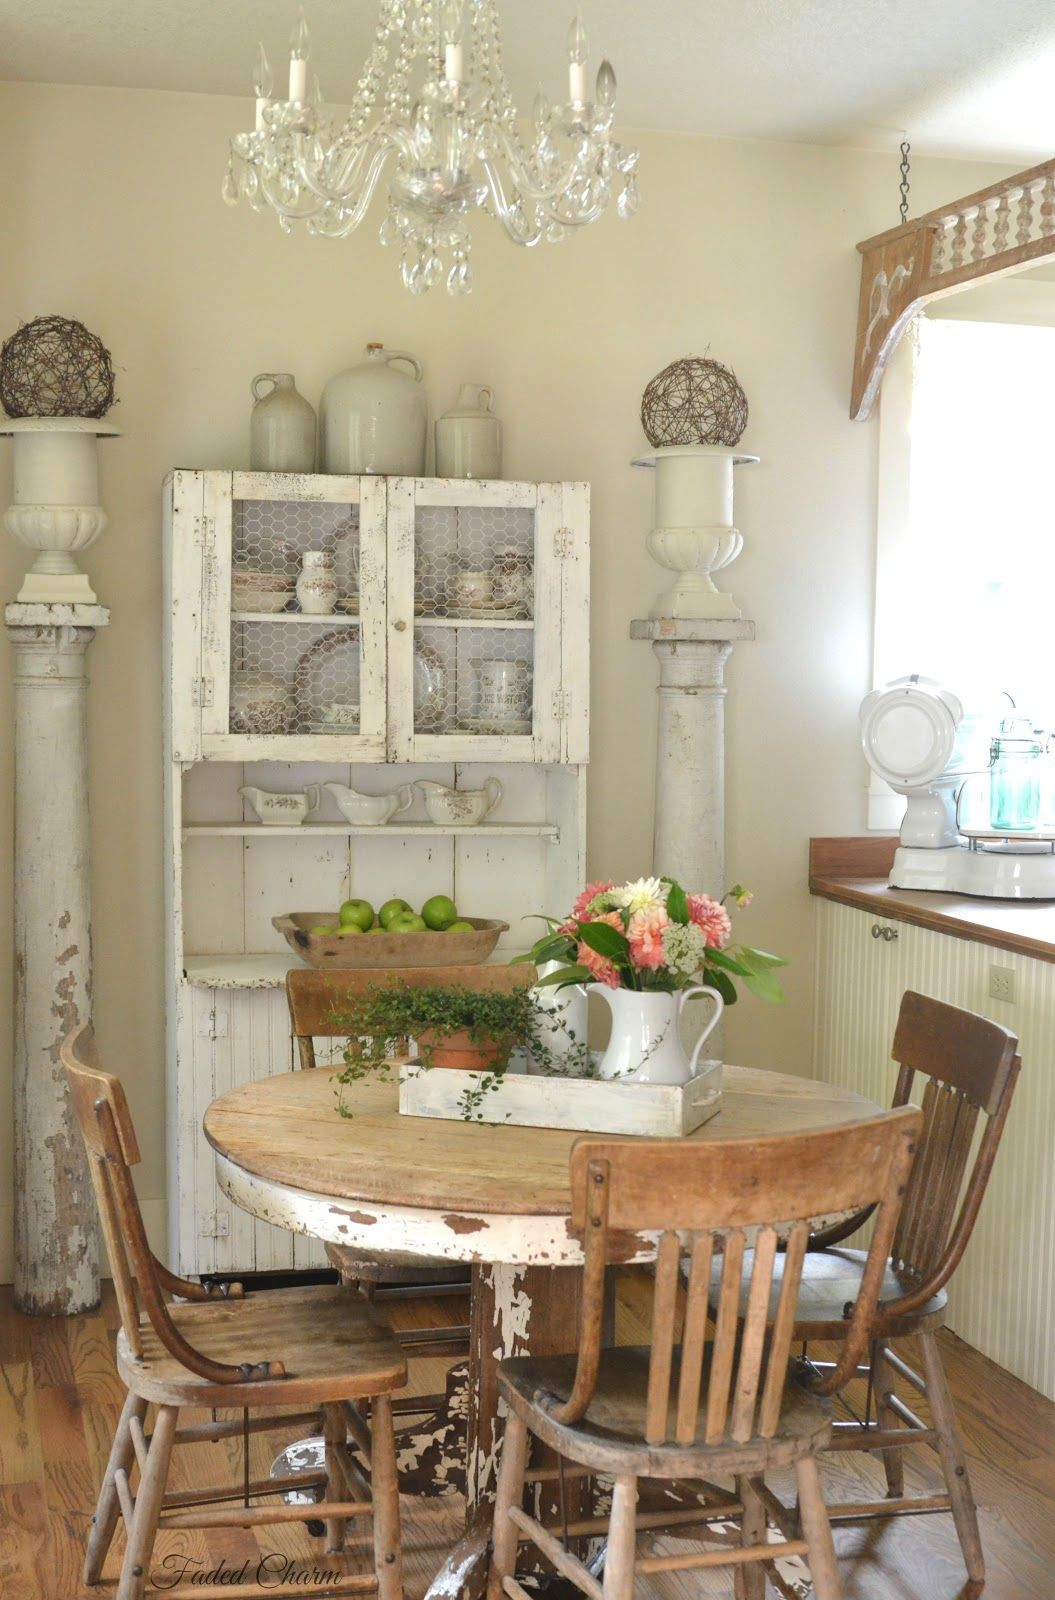 Faded Charm Farmhouse Fresh (With images) Decor